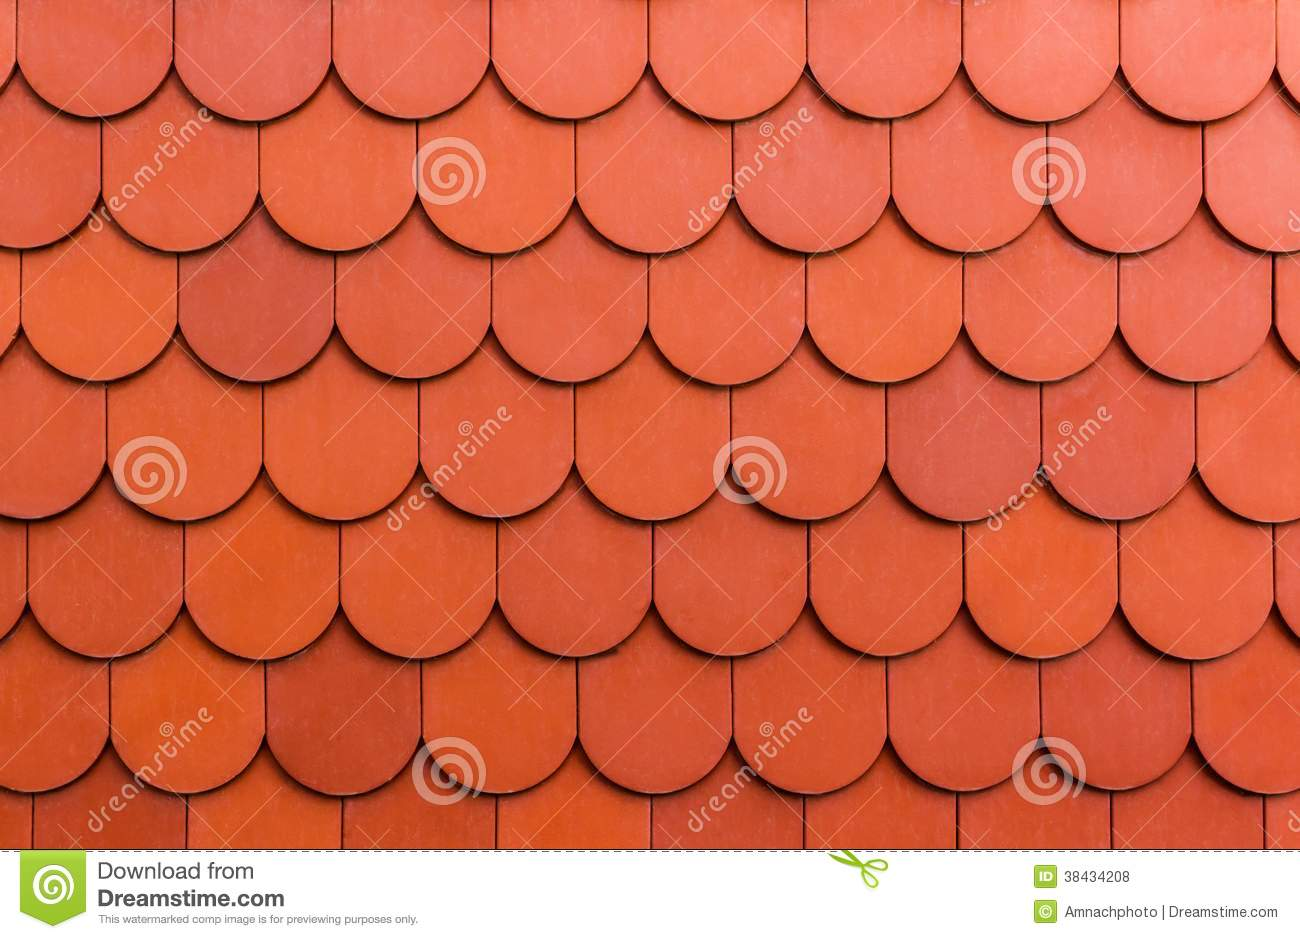 Seamless Orange Roof Tile Texture Background Royalty Free